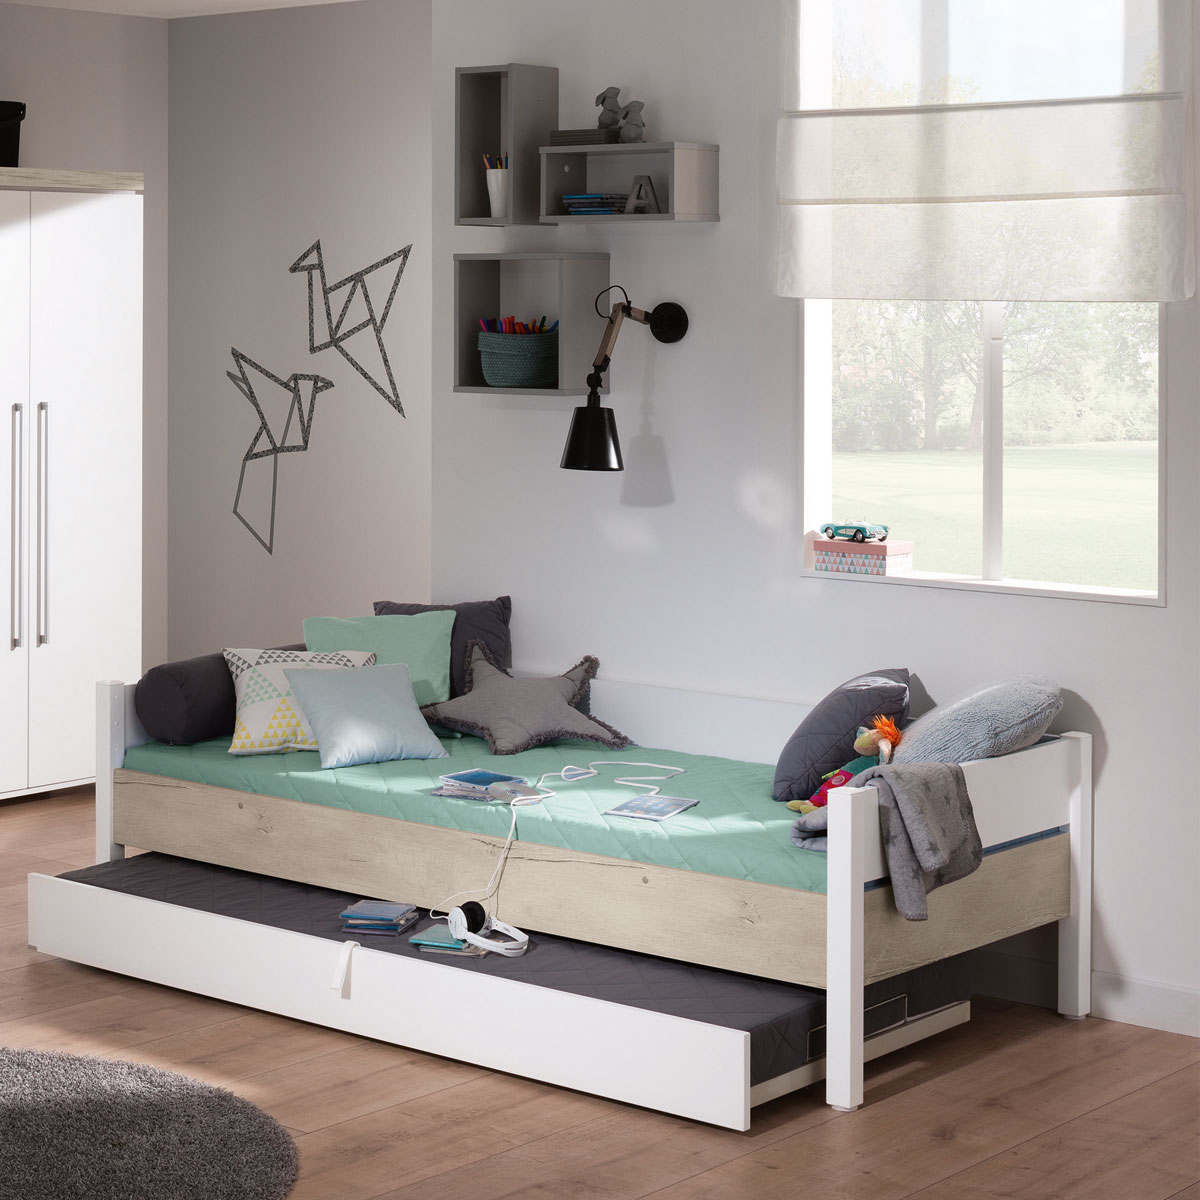 paidi kira liege in gro er vielfalt auf. Black Bedroom Furniture Sets. Home Design Ideas